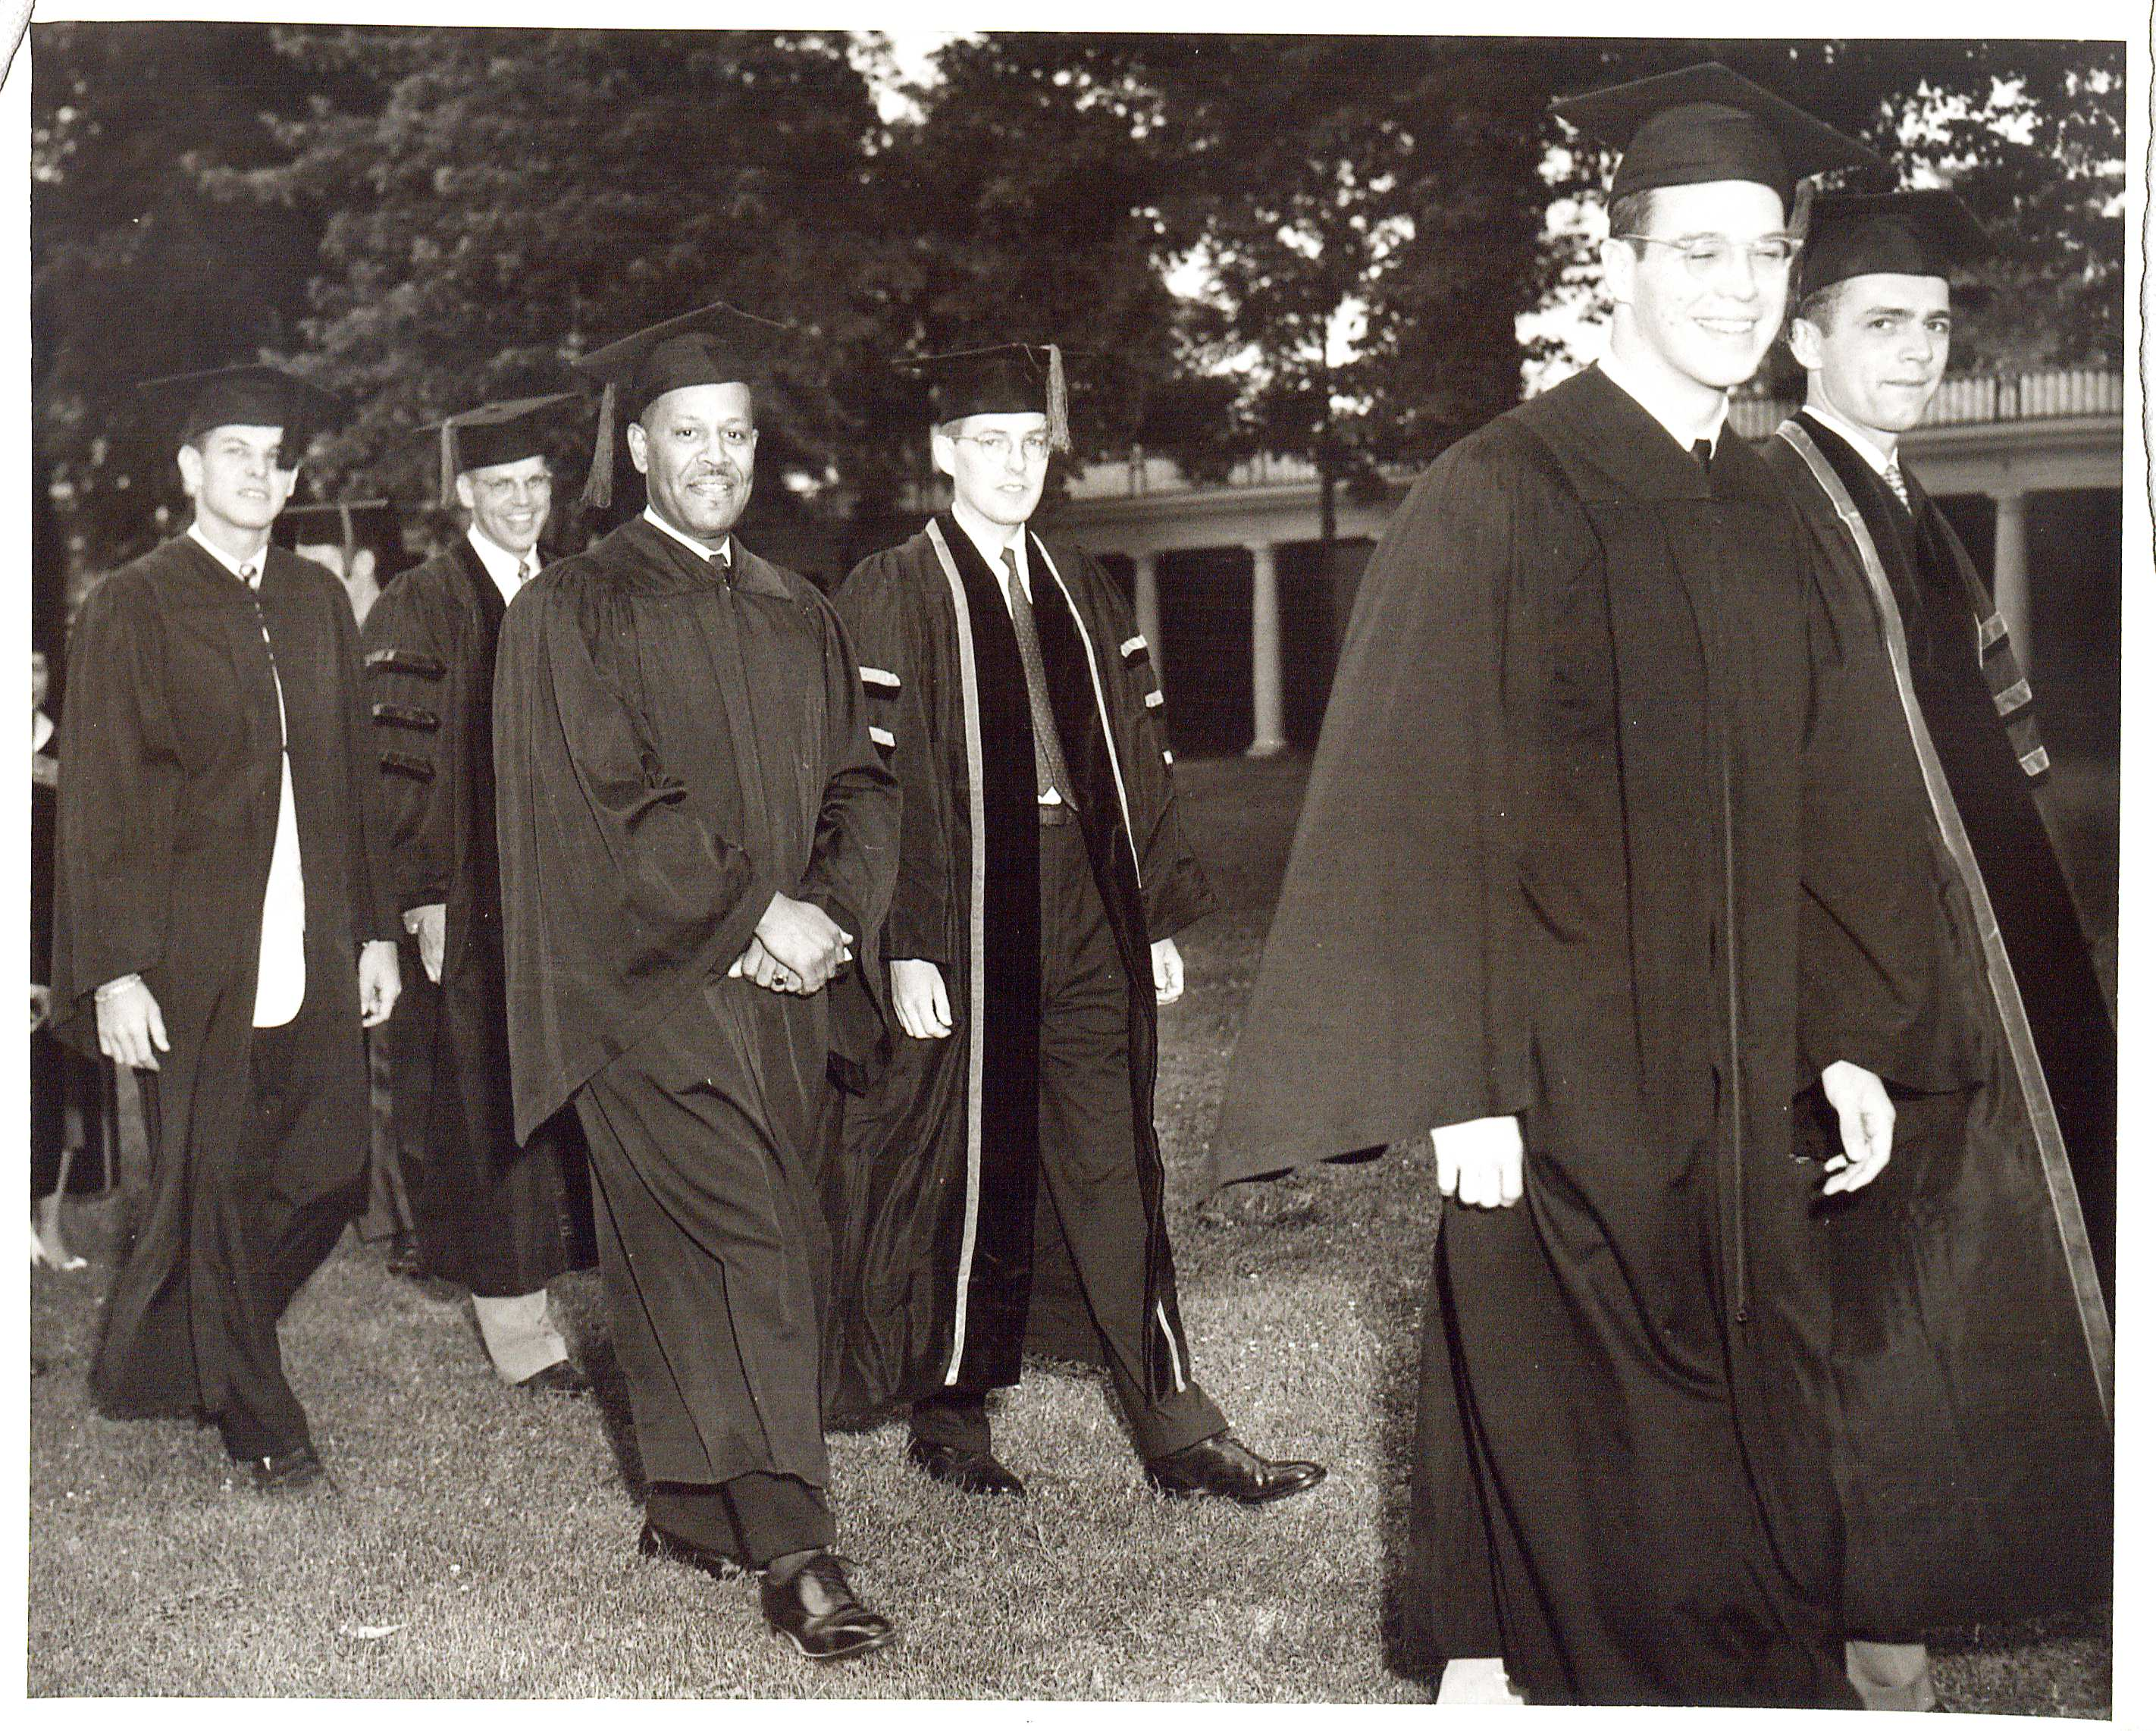 Photograph of UVa Finals, Academic procession. 15 June 1953.  (RG-30/1/10.011) University of Virginia Visual History Collection Here, a photograph of Walter Nathaniel Ridley, the first African American to graduate from the University of Virginia, is captured.  Ridley (center) smiles for a photograph as he walks the Lawn at the Academic Procession of the summer of 1953.  Ridley received a Ph.D. in education.